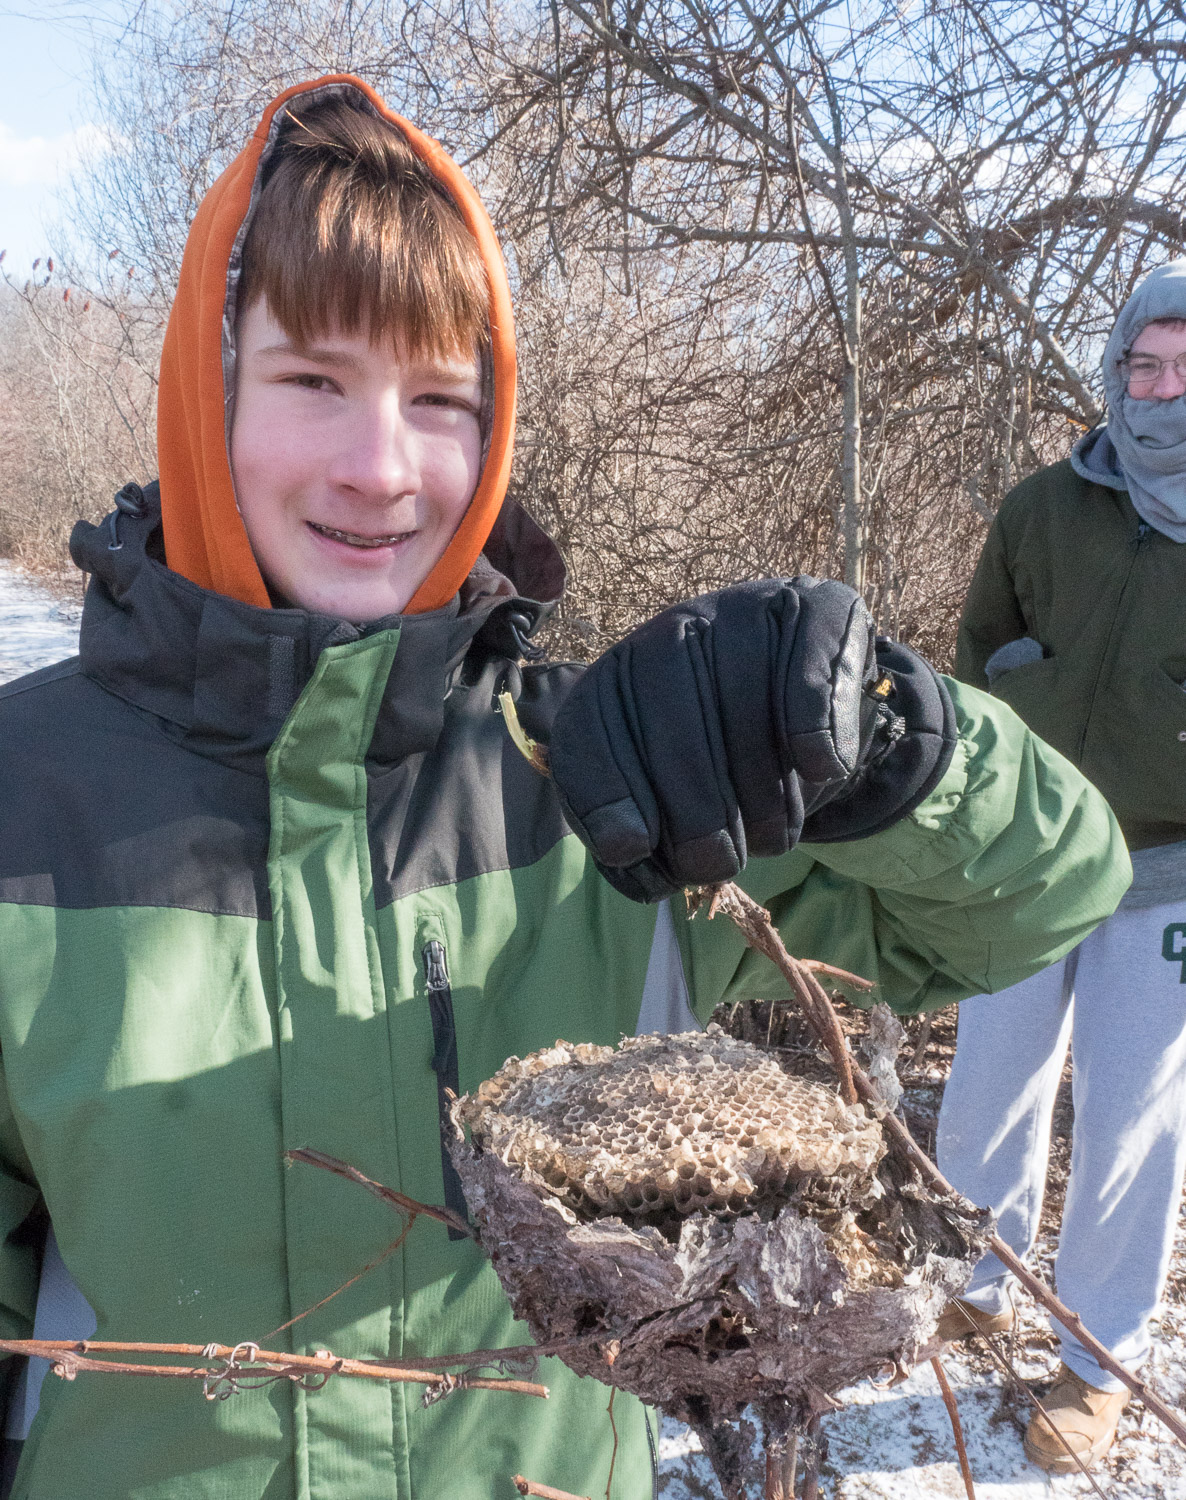 A scout gets a wasp nest to bring home as a nature souvenir.